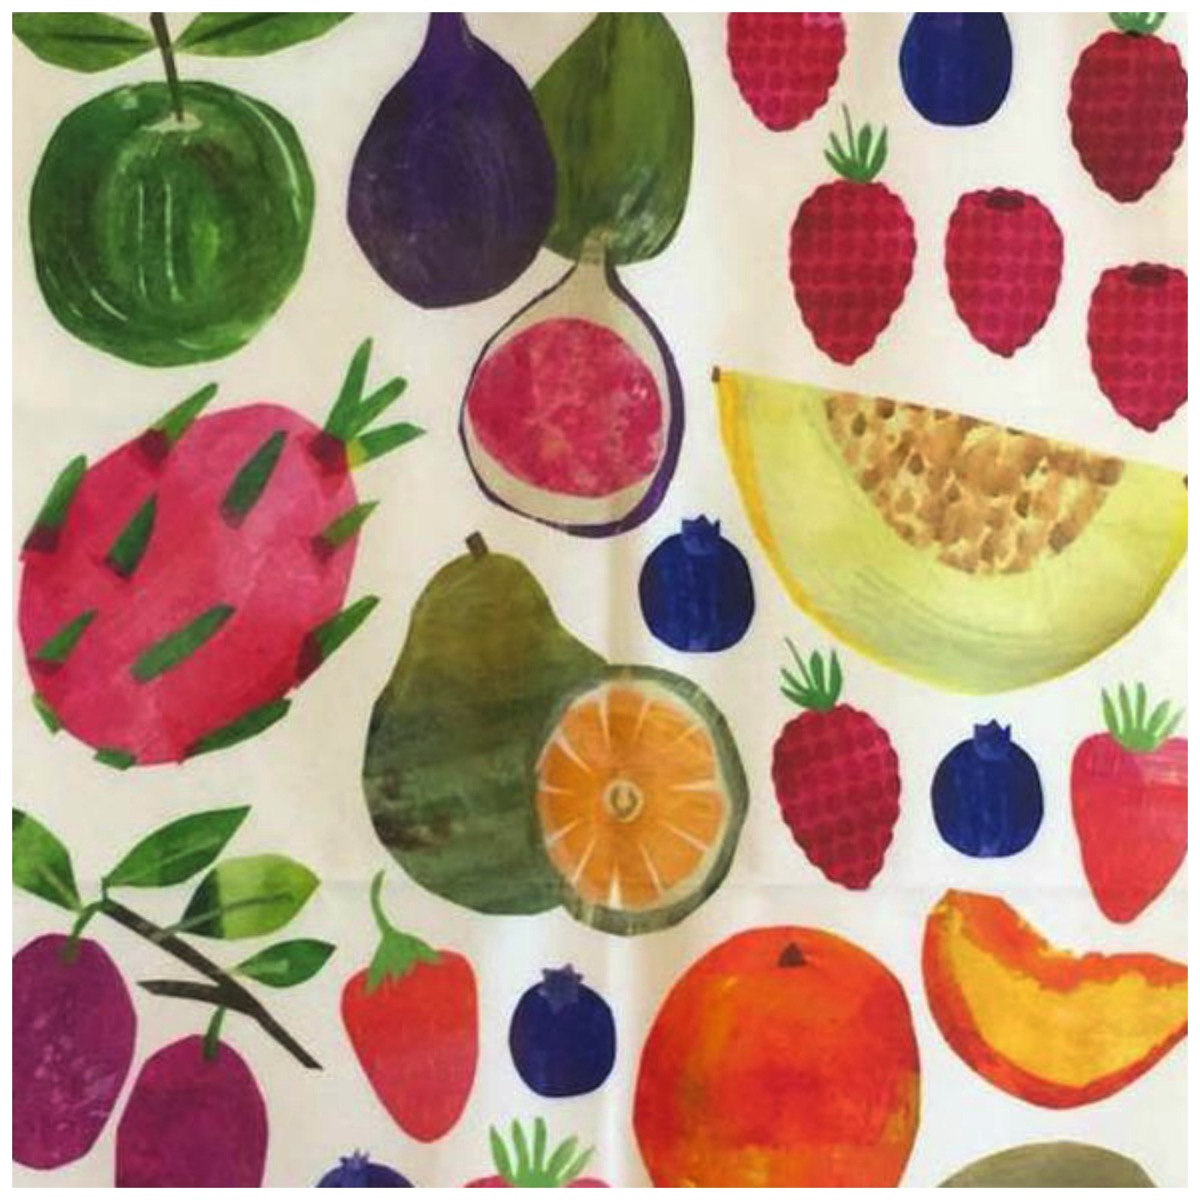 Colorful fruit art from tracey english